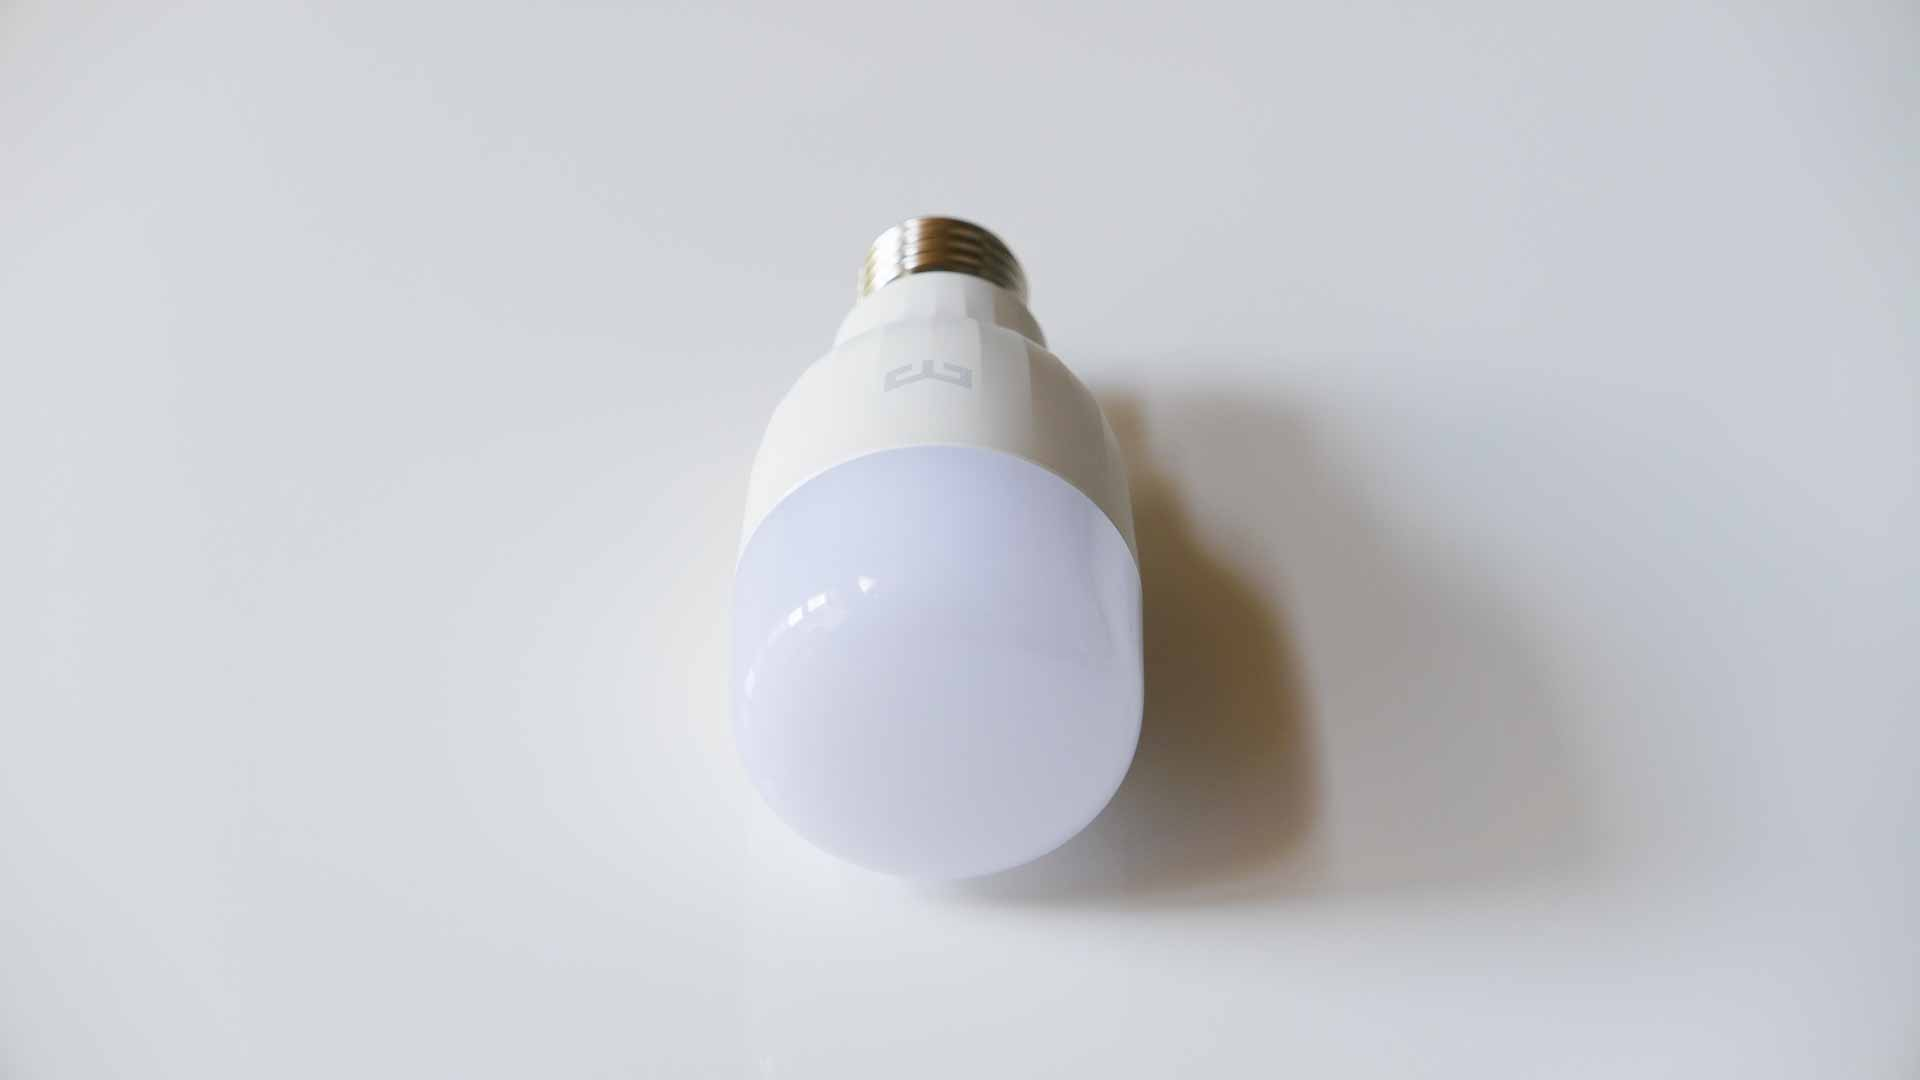 Xiaomi-Yeelight-e27-Lampe-in-weiß-5